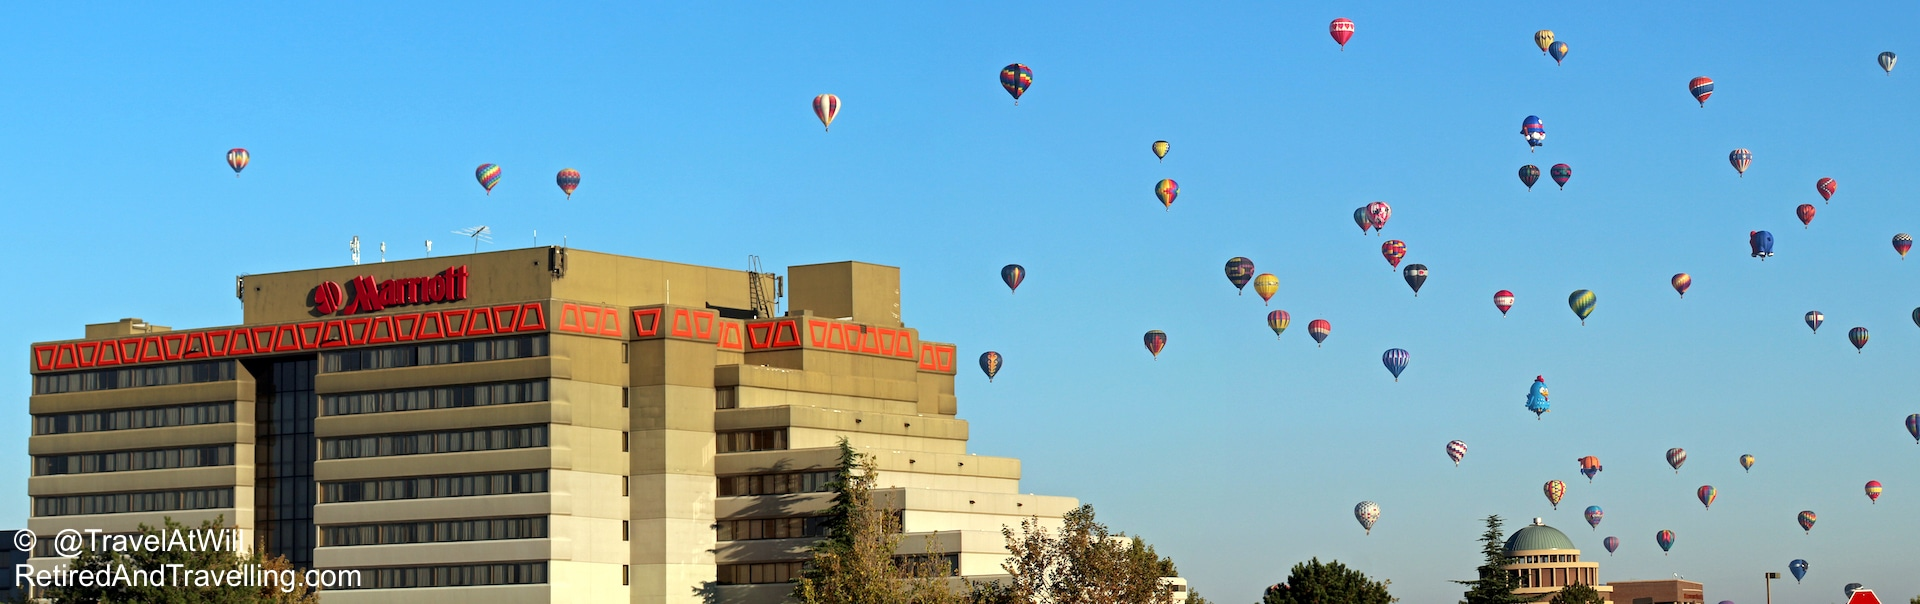 Balloon Fiesta from Marriott - Sky High In Albuquerque.jpg